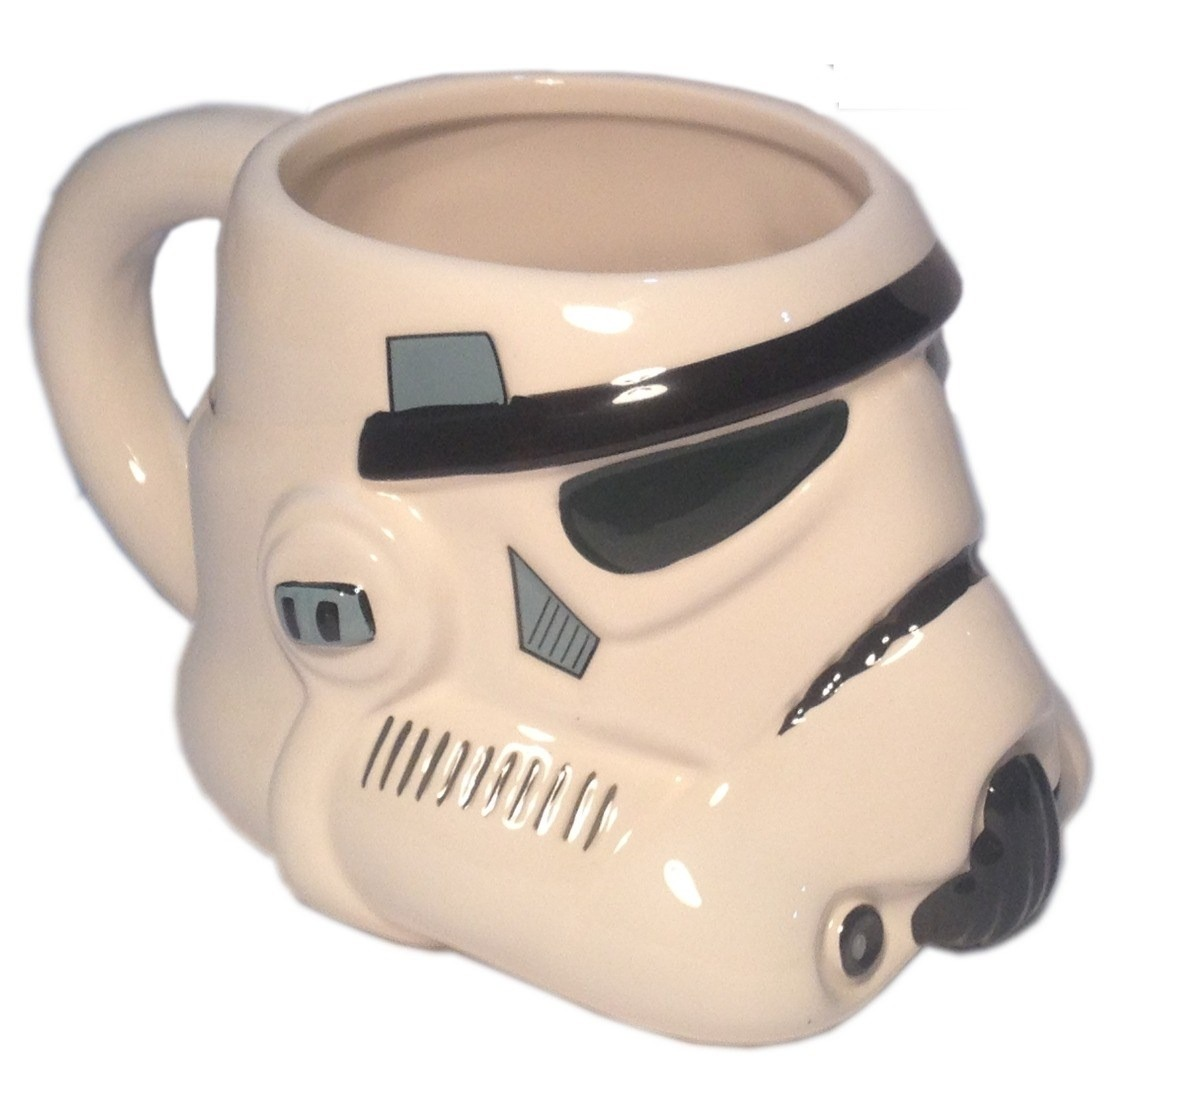 taza-star-wars-r2d2-darth-vader-storm-trooper-332901-MLM20431650986_092015-F